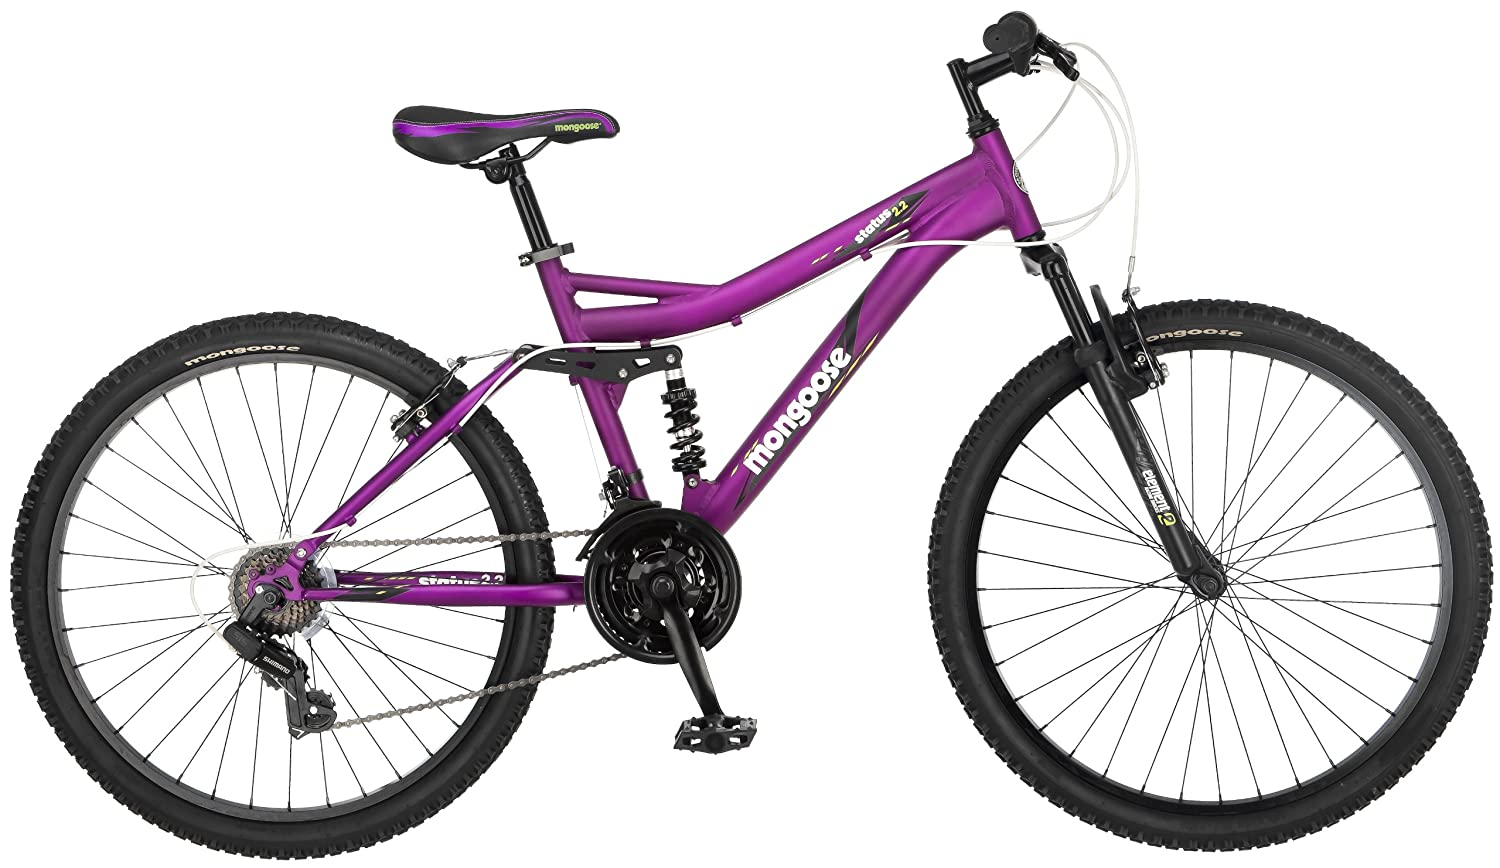 Mongoose Women's Status 2.2 Full Suspension Bicycle (26-Inch Wheels), Matte Purple, 16-Inch review 1